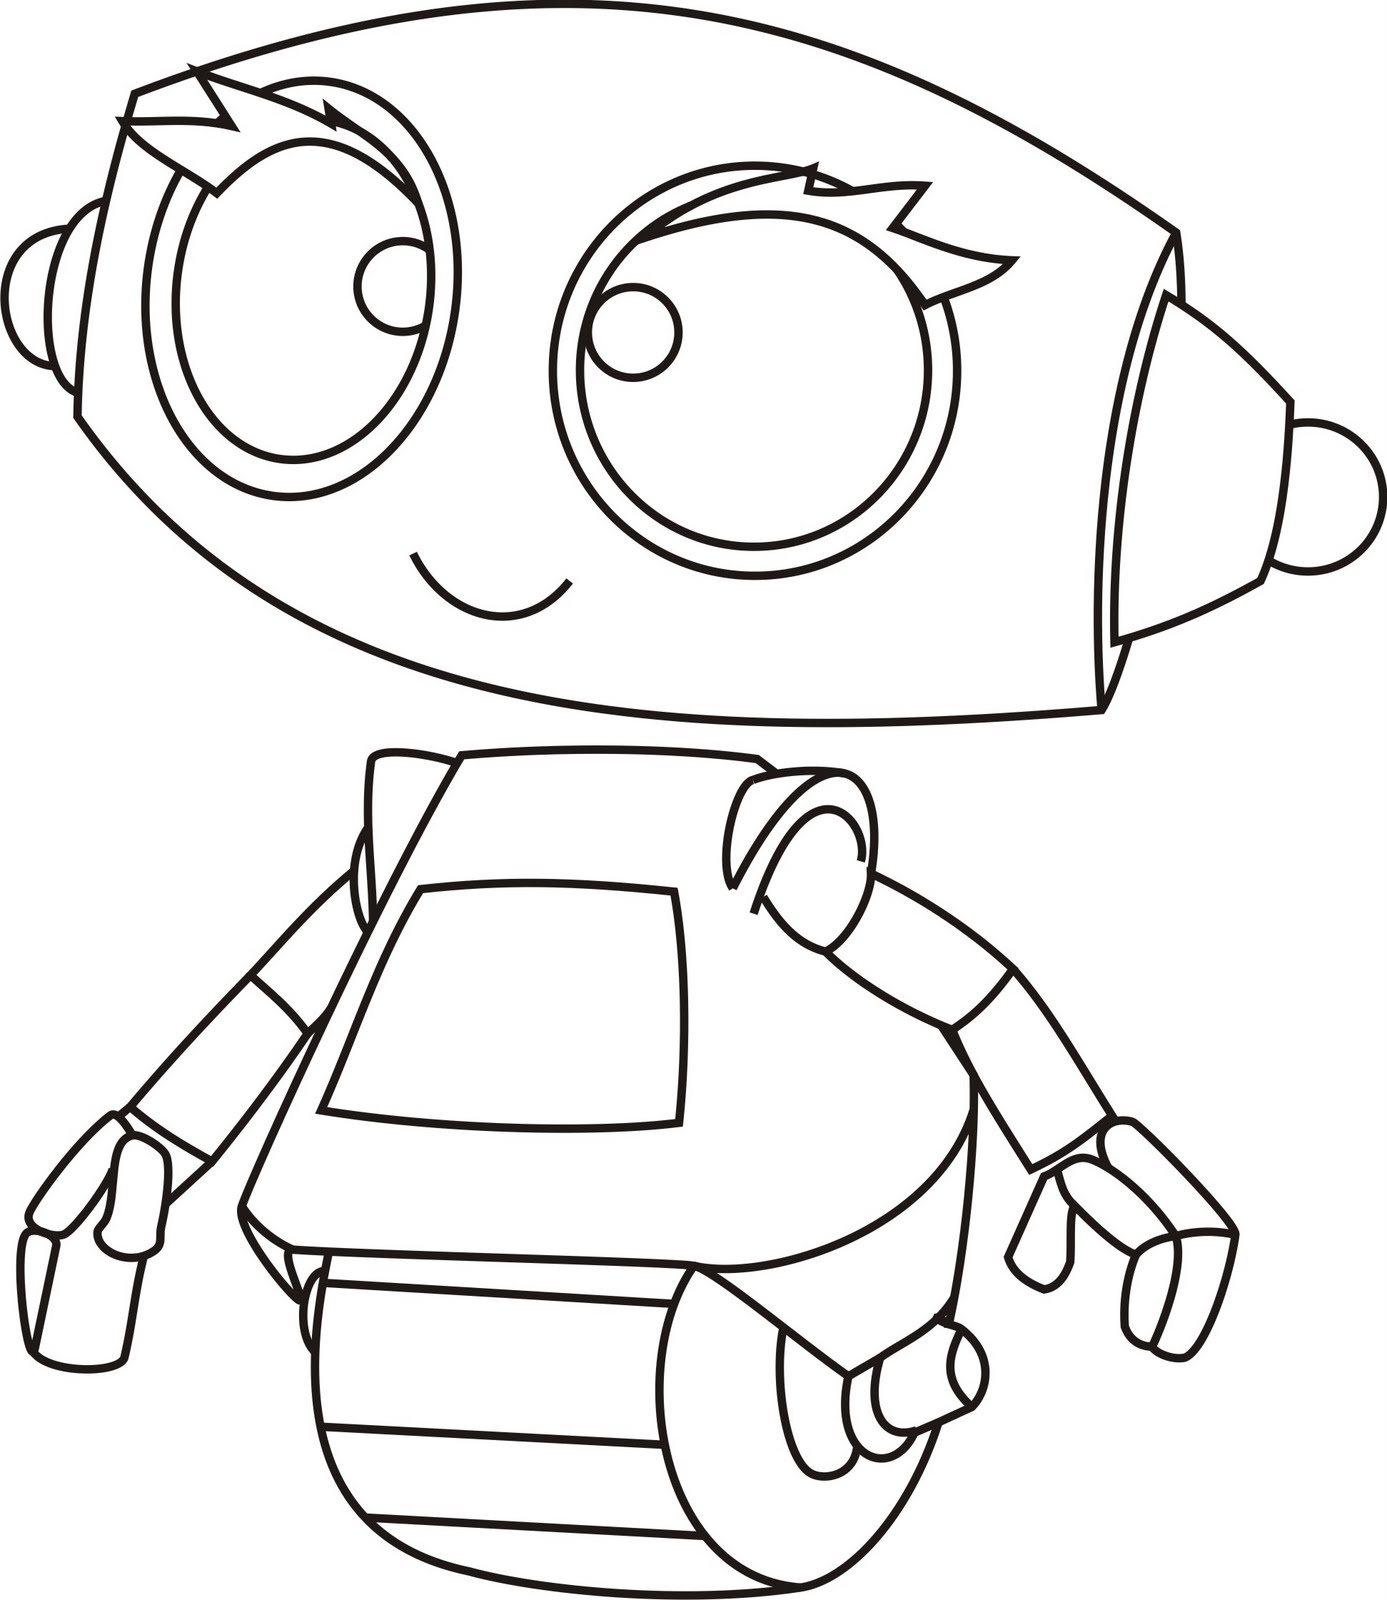 Robot coloring #7, Download drawings